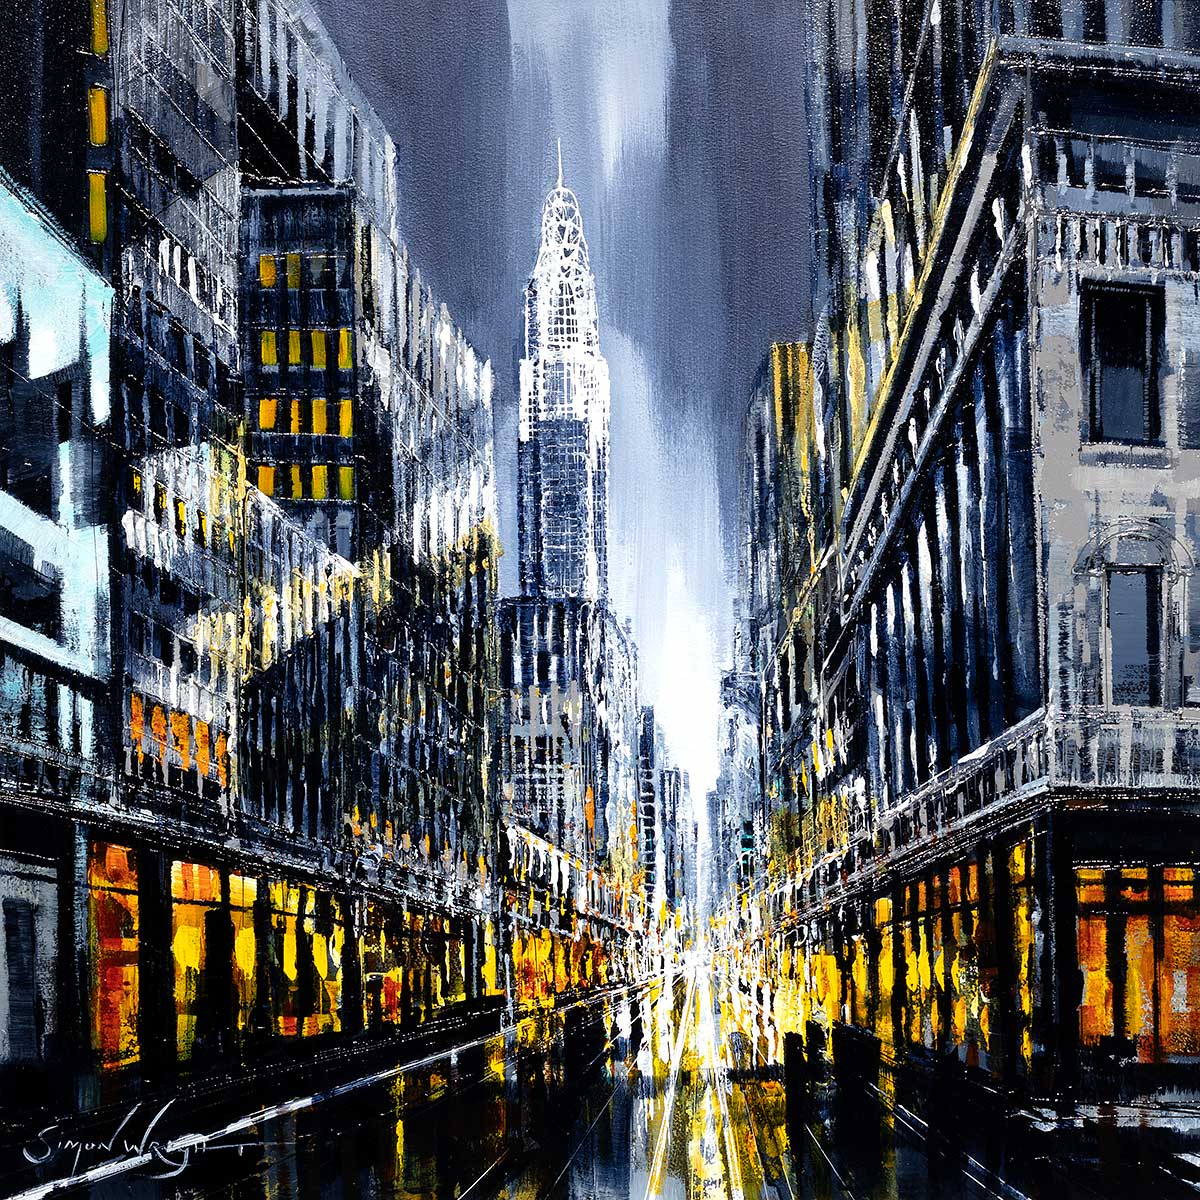 The City That Never Sleeps - Original Simon Wright Framed